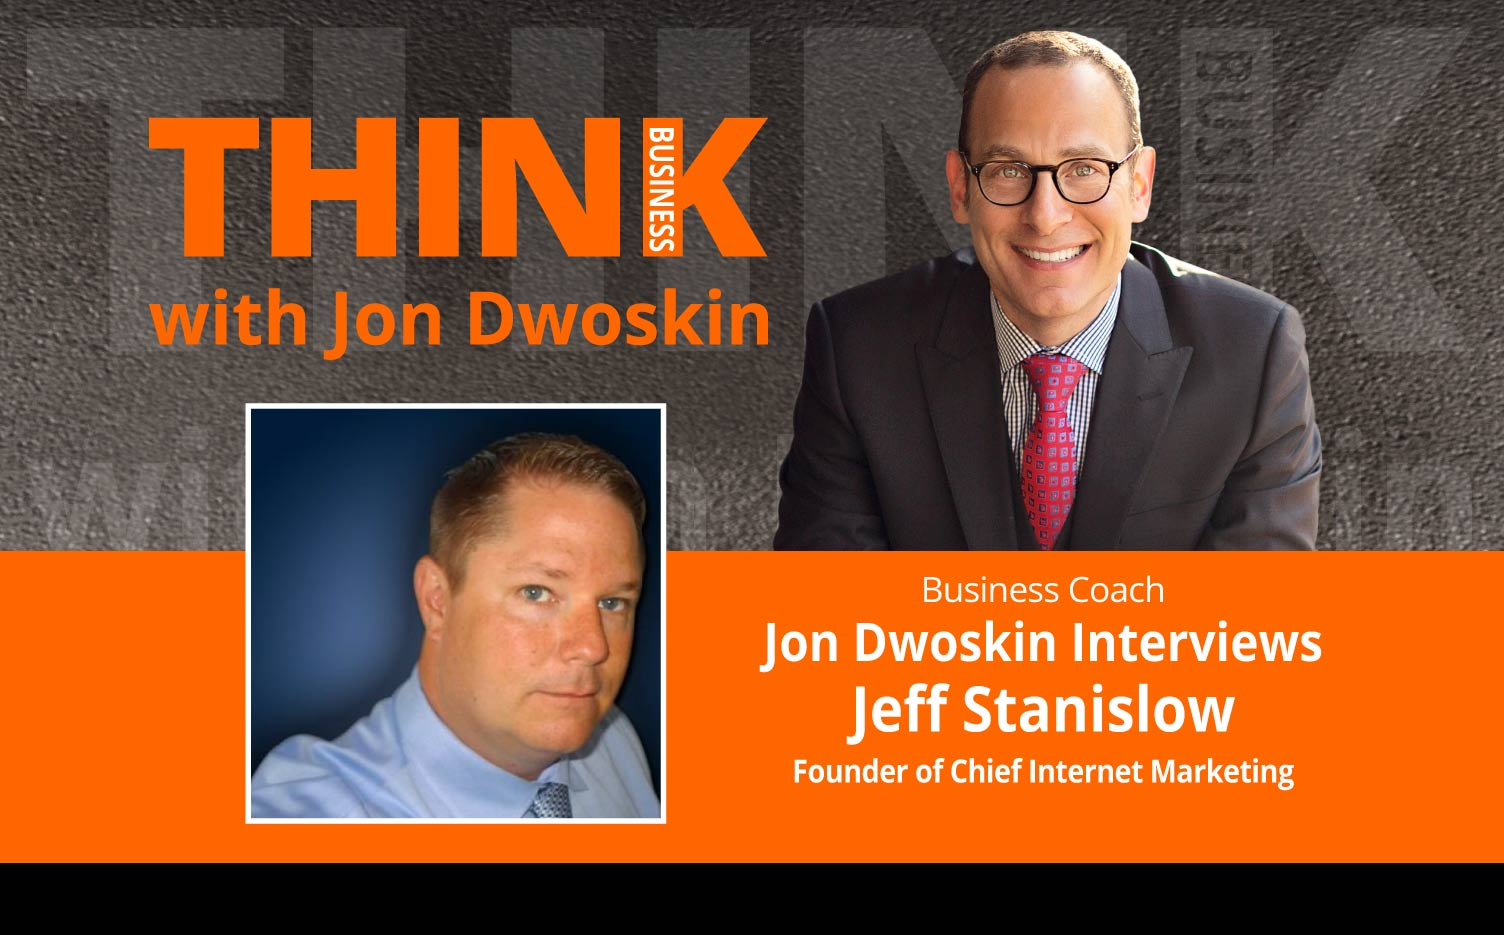 THINK Business: Jon Dwoskin Interviews Jeff Stanislow, Founder of Chief Internet Marketing